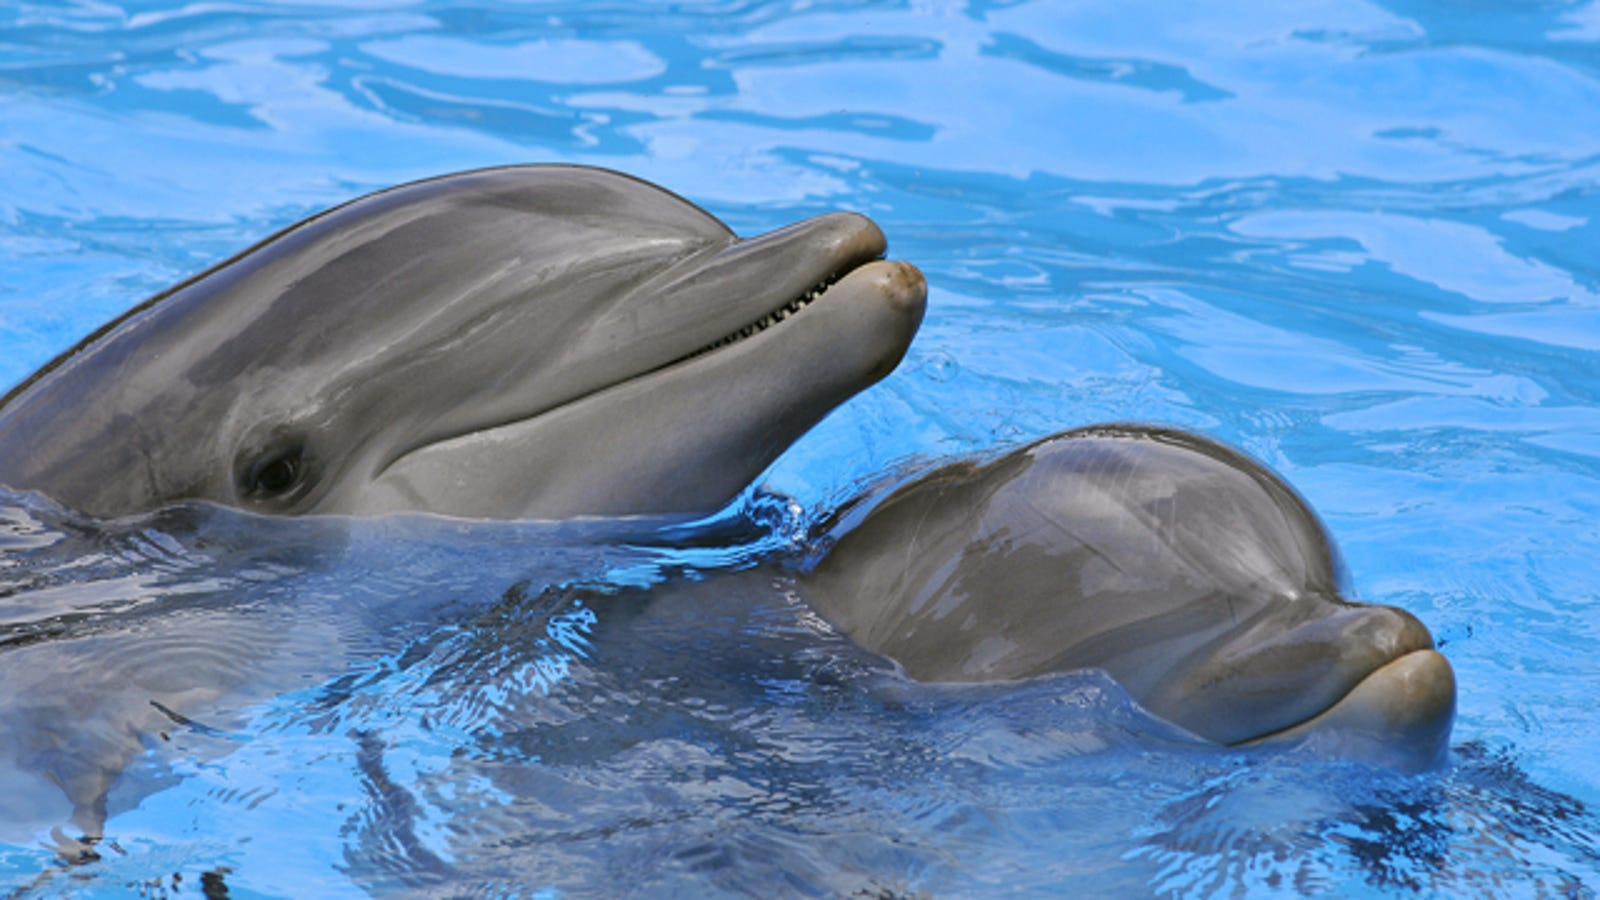 Who is smarter: a dolphin or a man